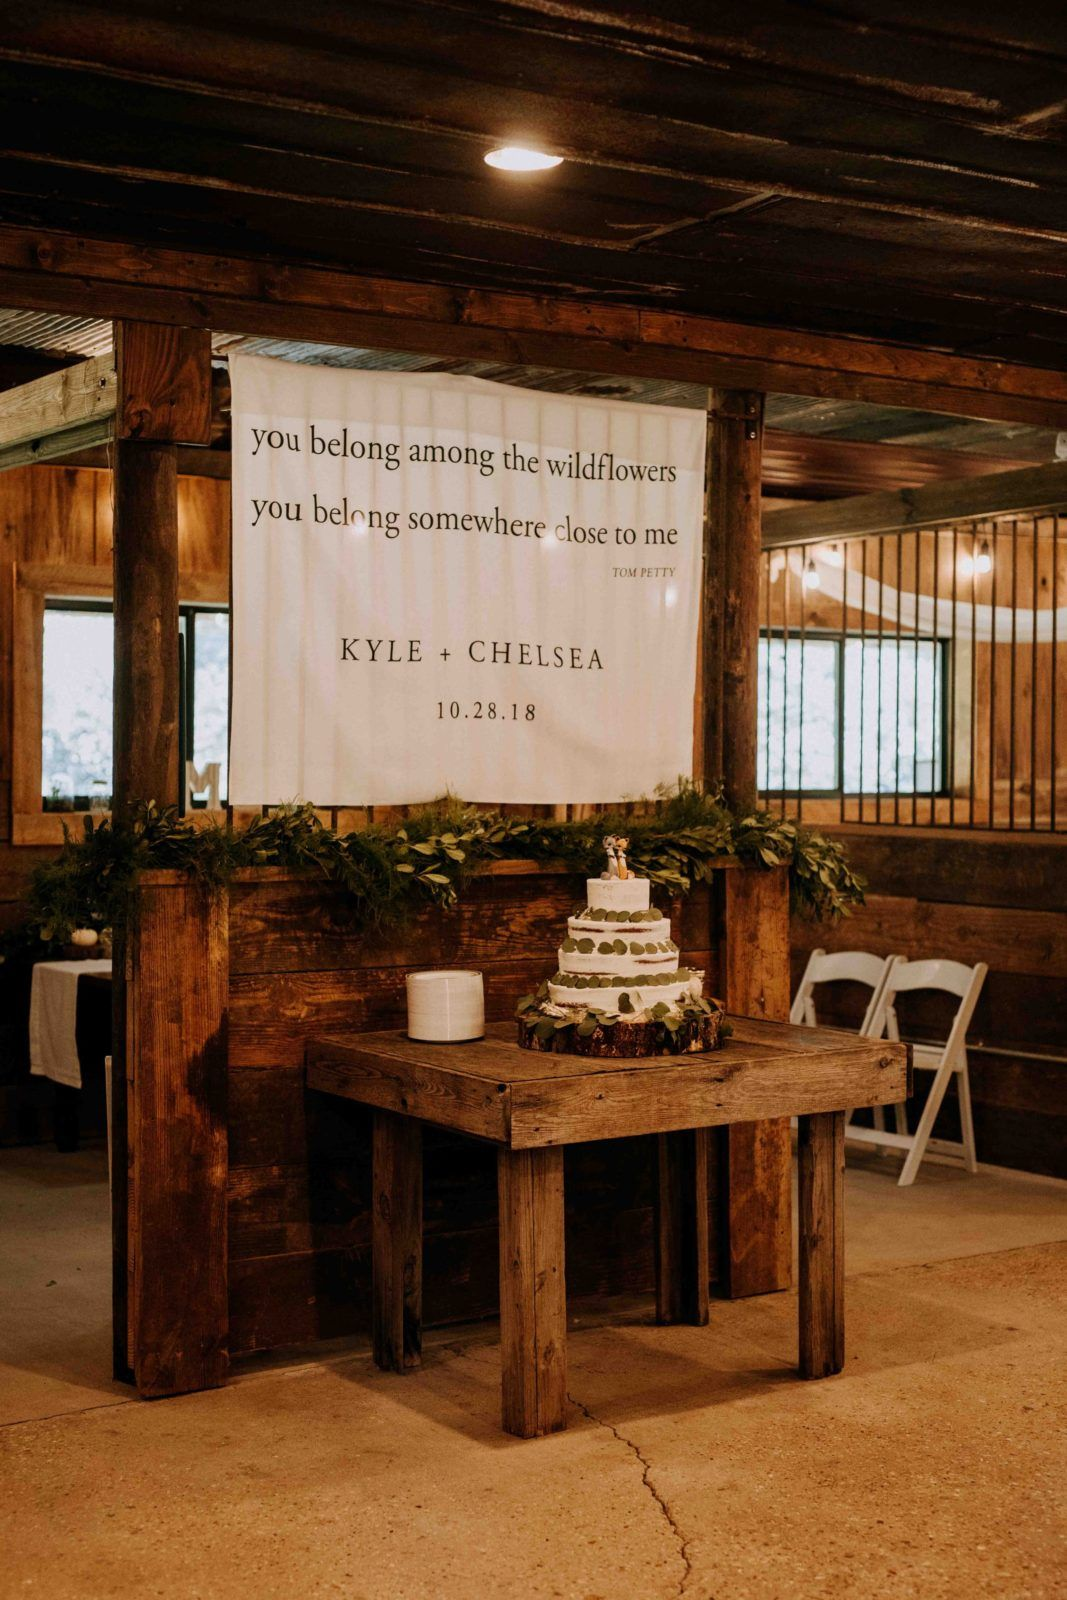 Bohemian Barn Wedding At The Venue Southern Oaks Farm In Gulfport Ms Mississippi Photographer April And Paul Photography: Wedding Venue In Gulfport Ms At Reisefeber.org